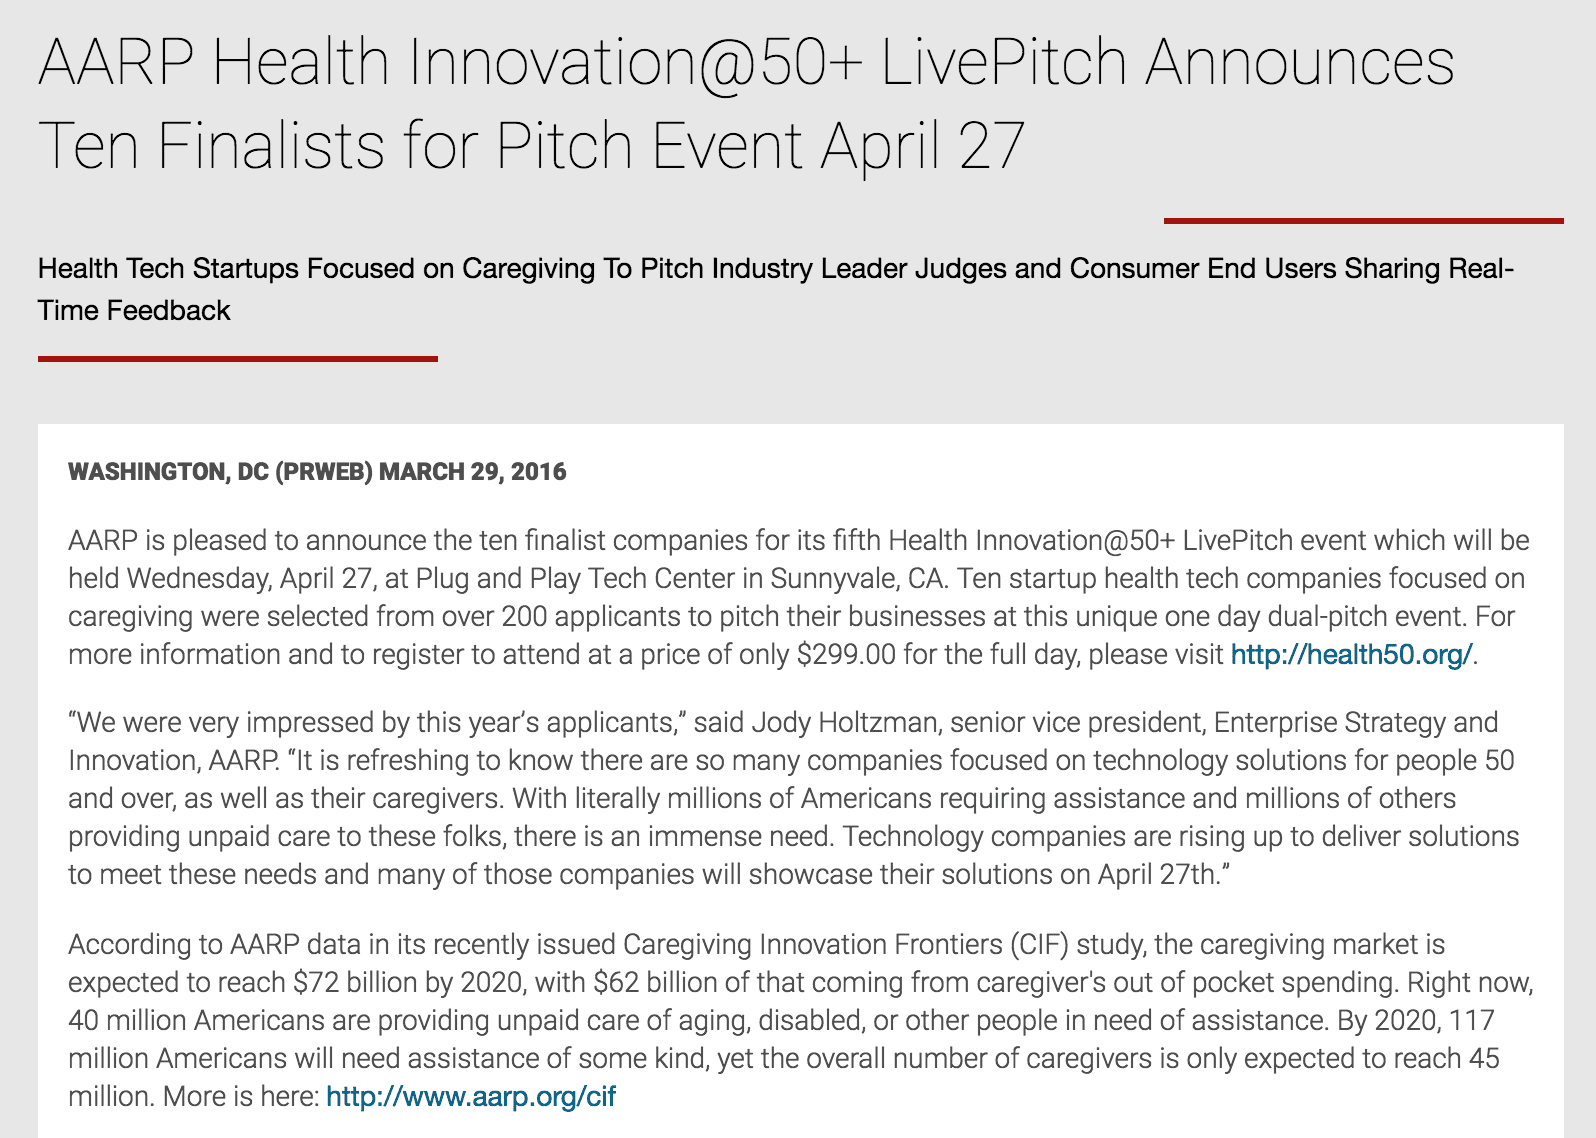 AARP Health Innovation@50+ LivePitch Announces Ten Finalists for Pitch Event April 27